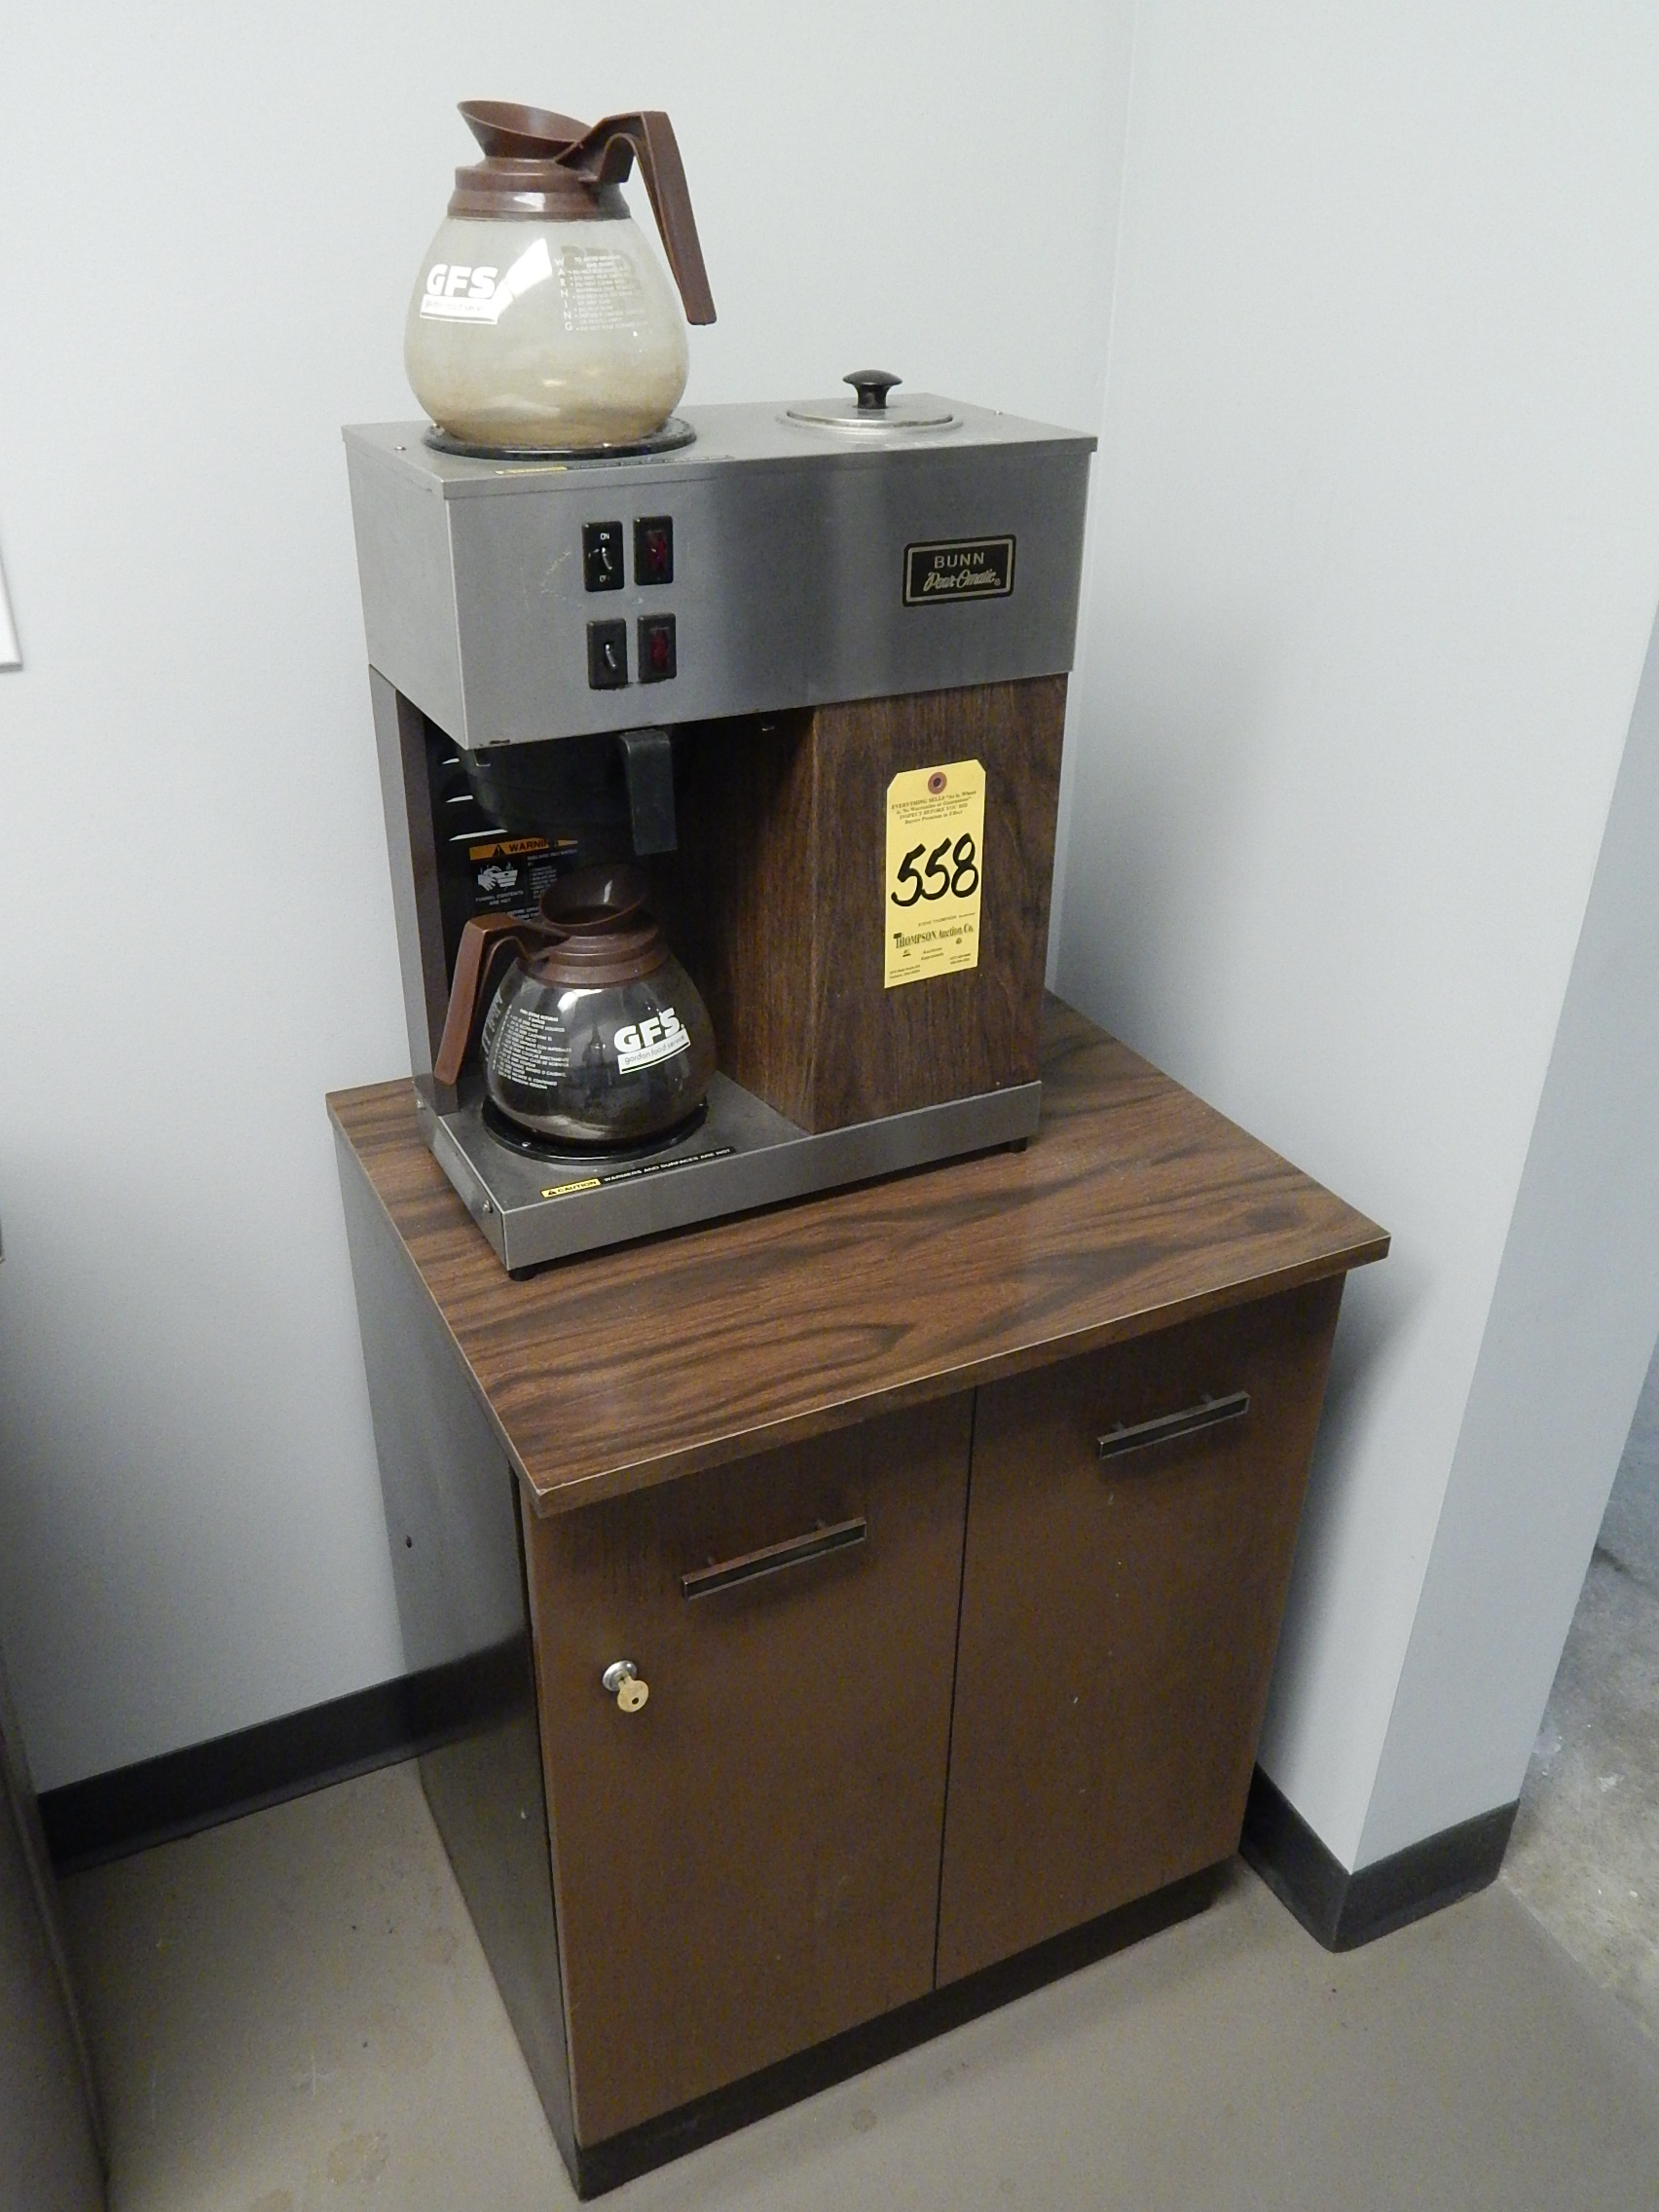 Bunn Coffee Maker Under Cabinet : Bunn Cabinet Coffee Maker Shop Bunn Velocity Brew 10 Cup Black Coffee Maker At Lowes, Shop Bunn ...